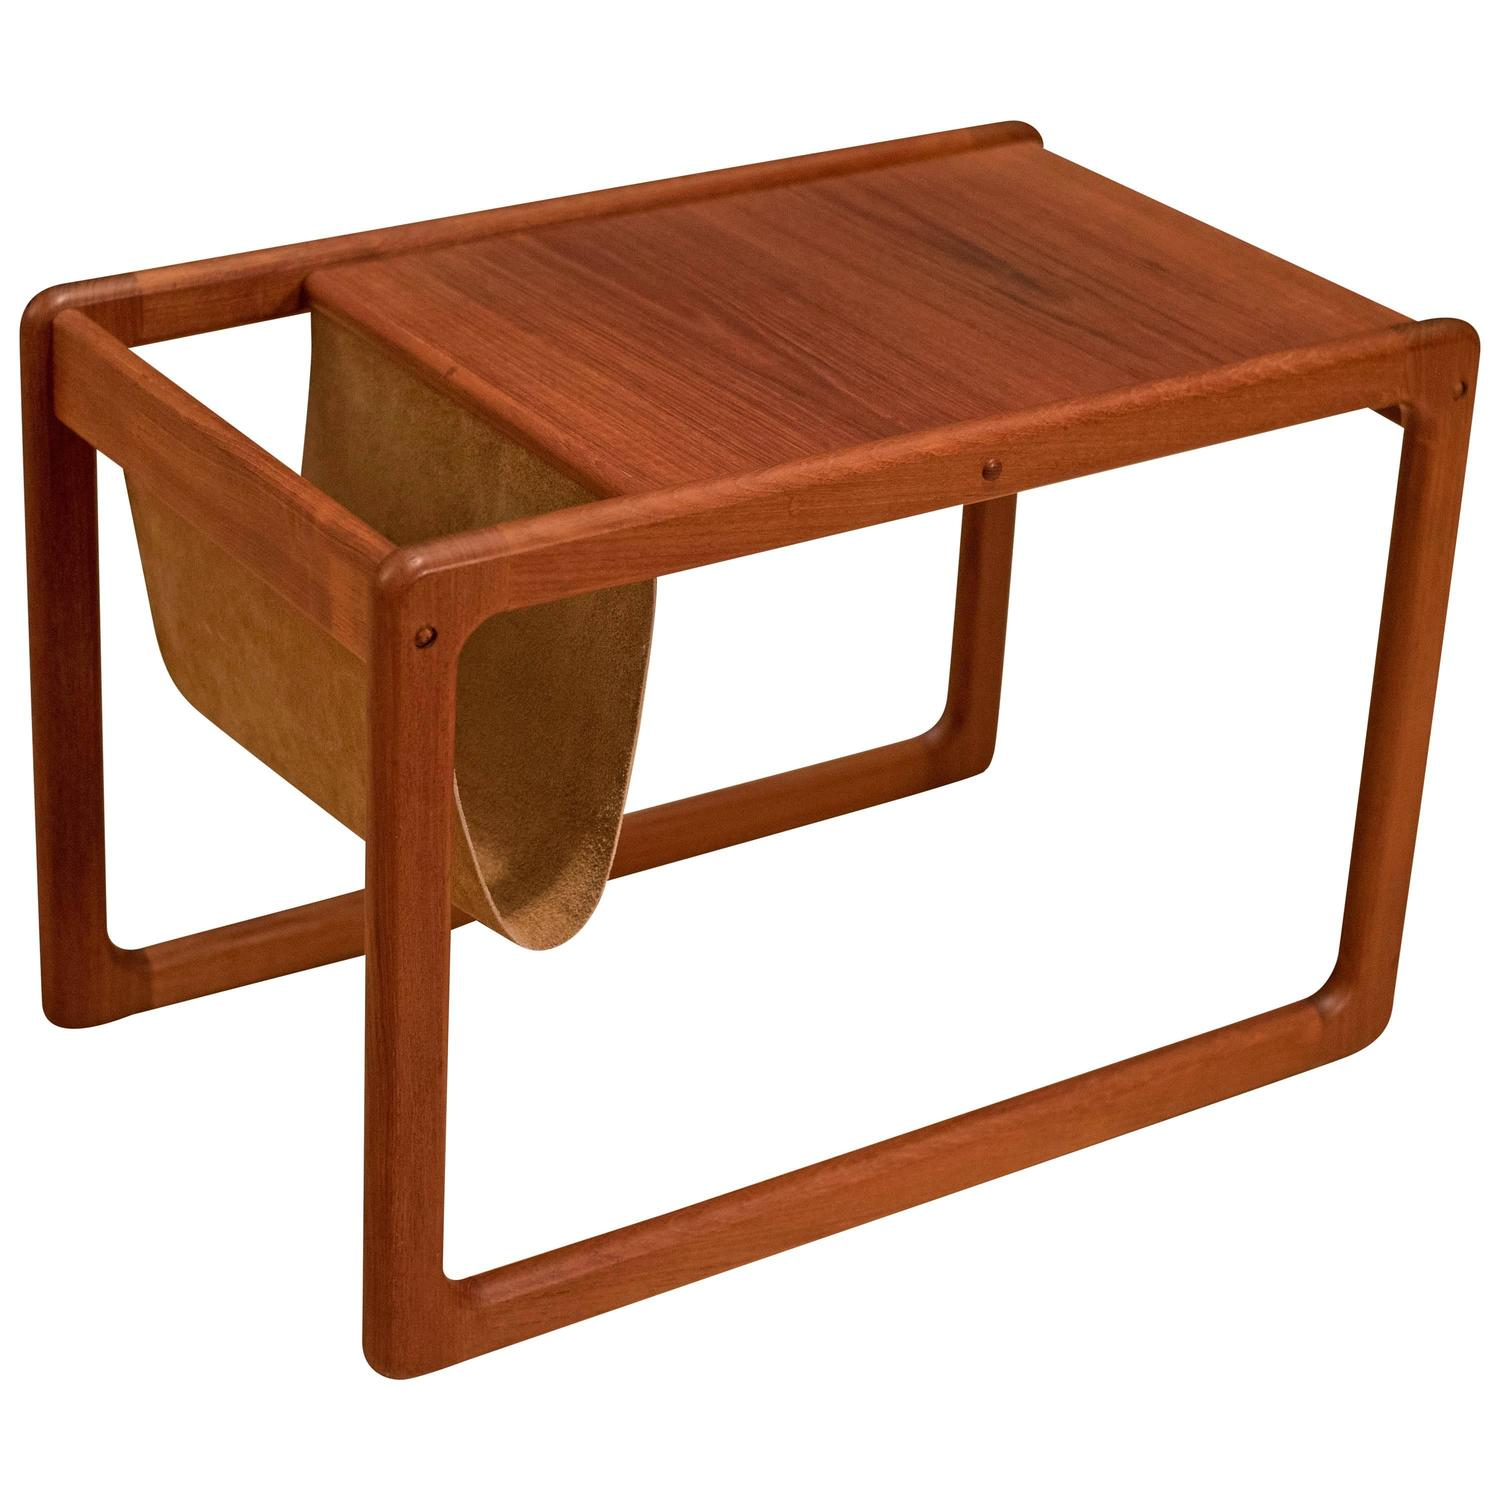 Old Charm Coffee Tables Ebay: Vintage Danish Leather Magazine Rack Side Table For Sale